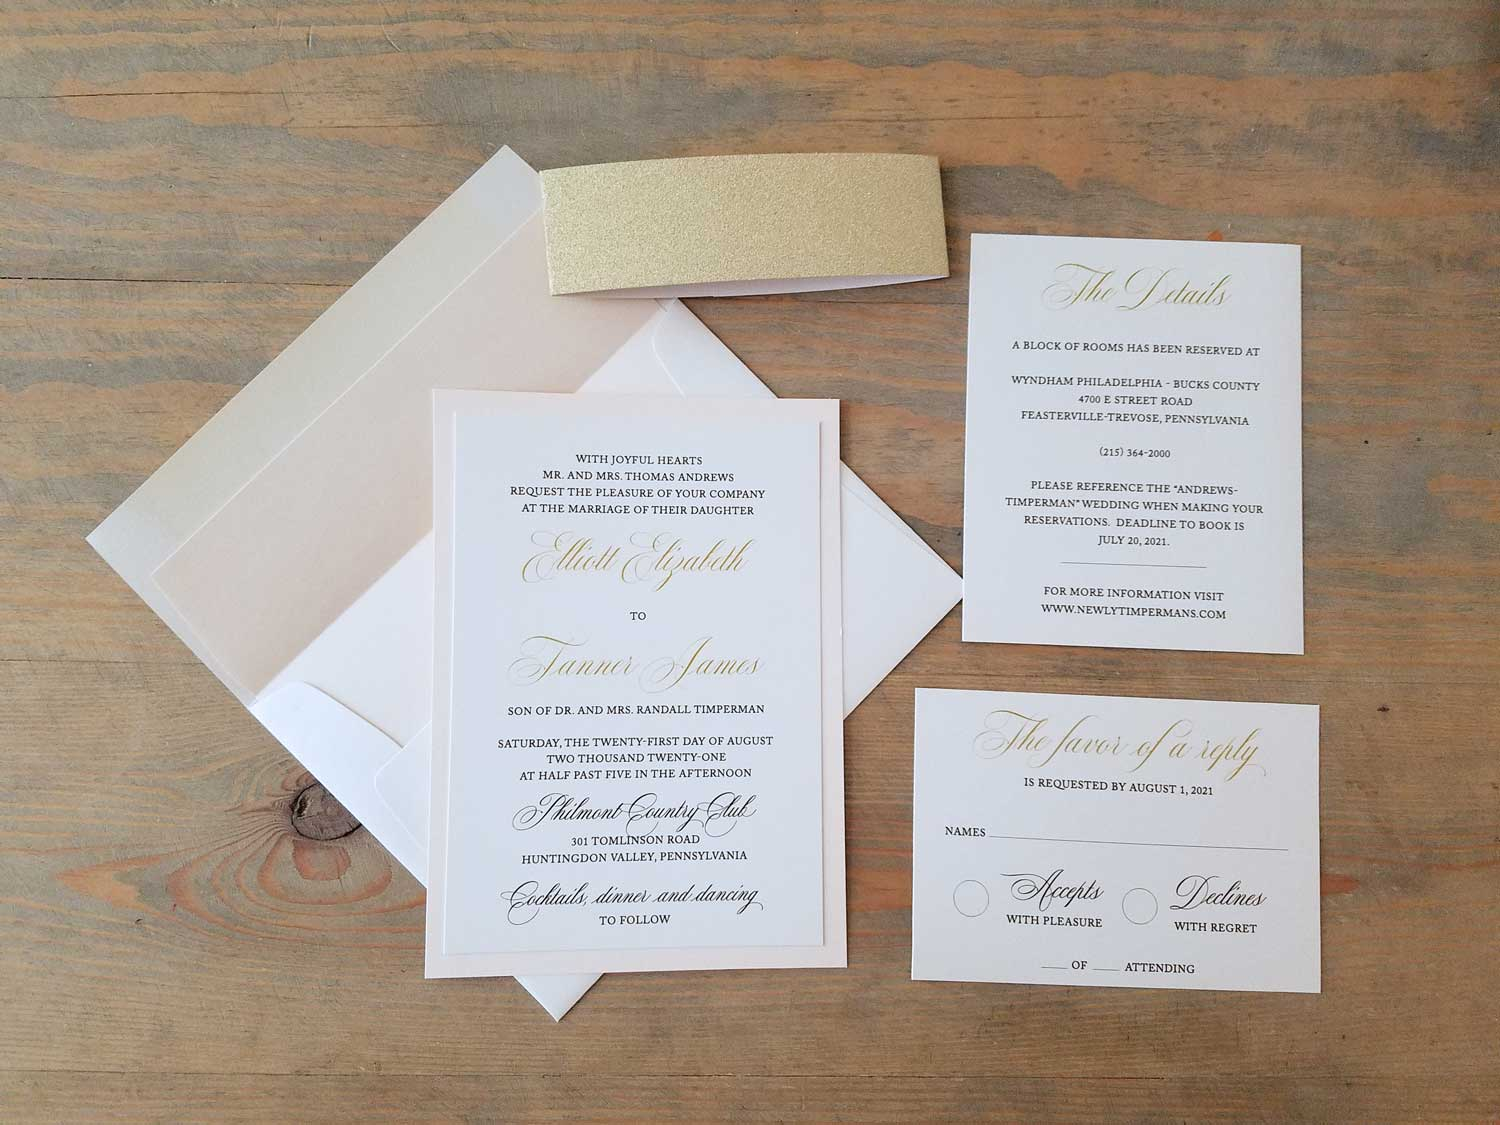 delicate-traditions-wedding-invitation-5